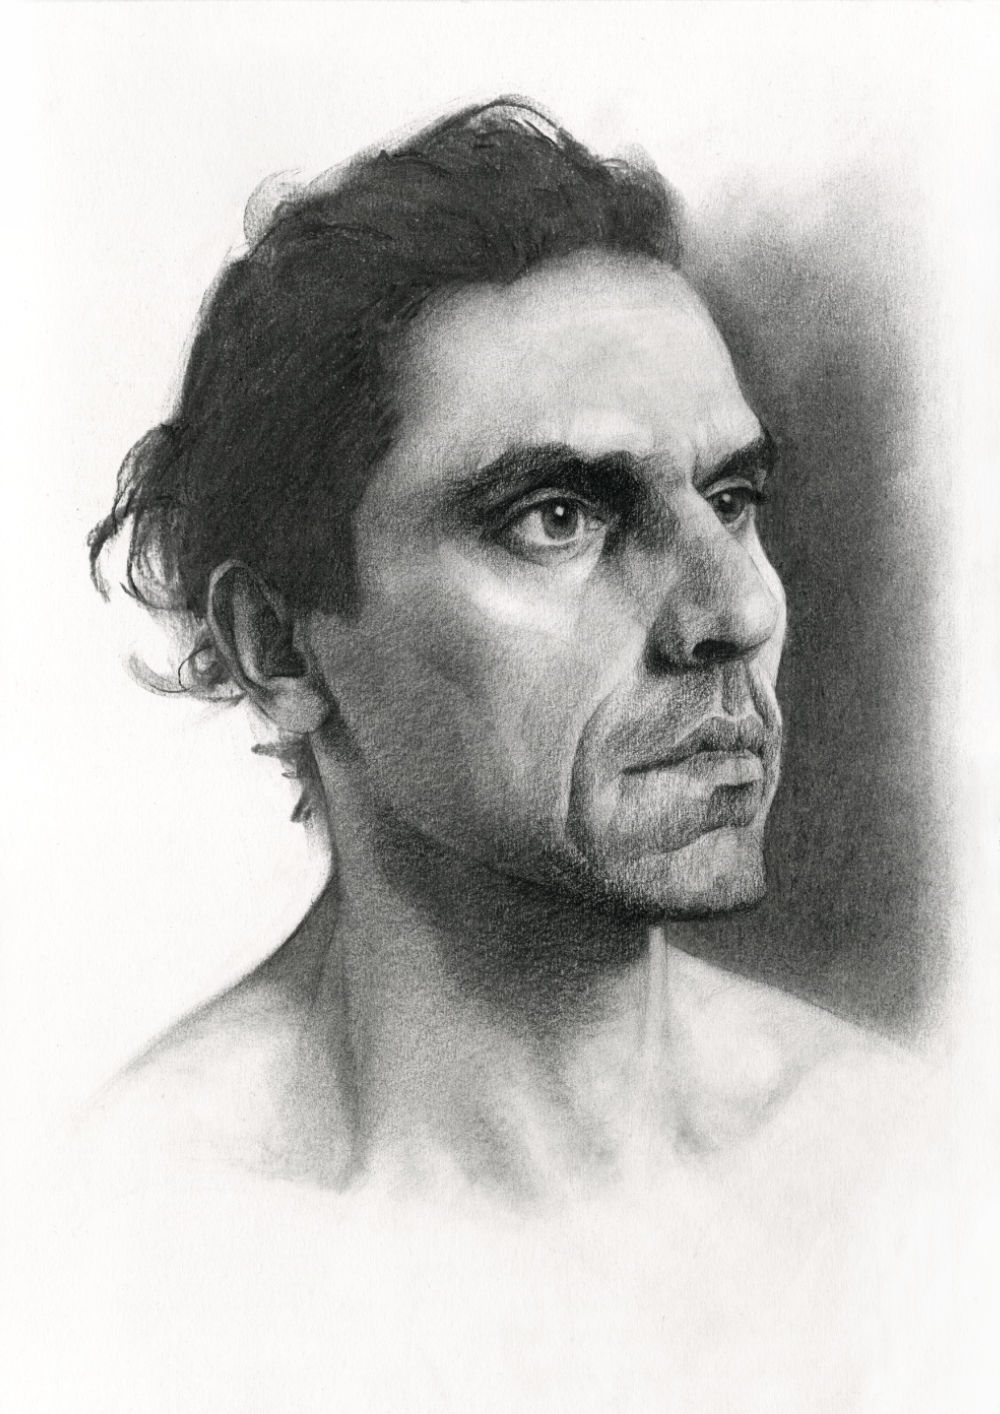 Portrait Drawing in Charcoal on Paper, by Artist & Illustrator James Martin